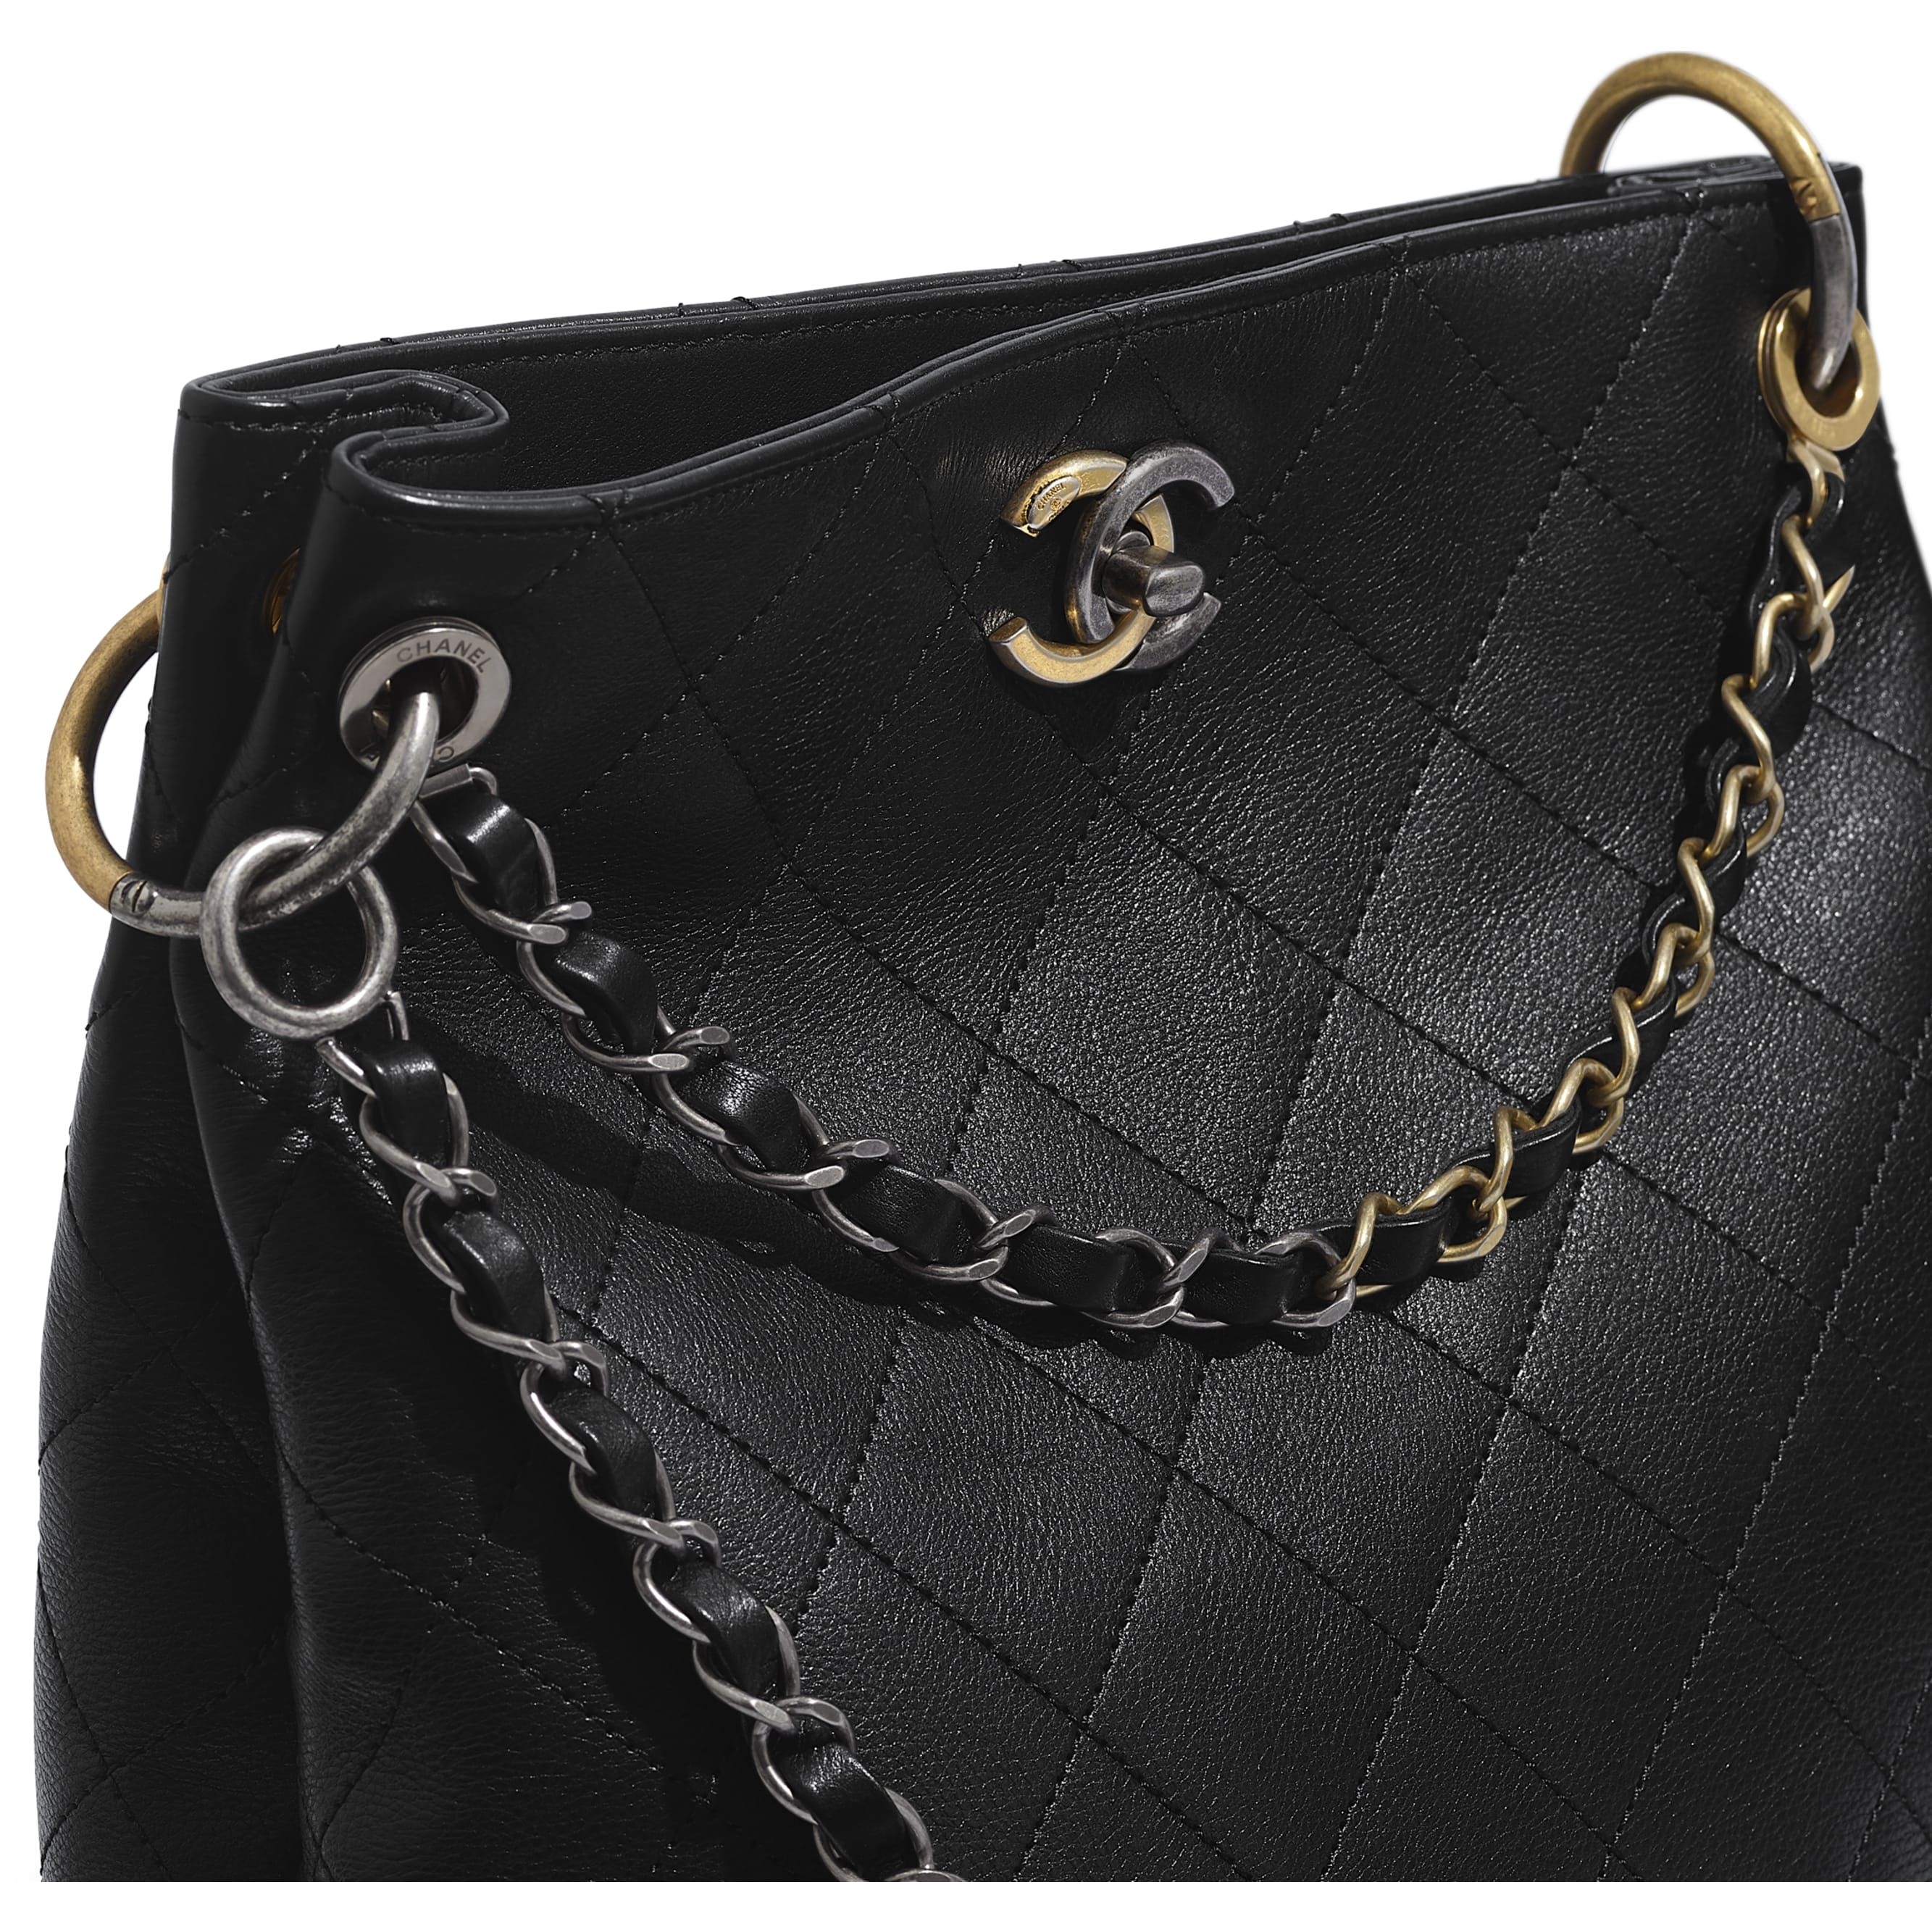 Hobo Handbag - Black - Calfskin, Gold-Tone, Silver-Tone & Ruthenium-Finish Metal - CHANEL - Extra view - see standard sized version